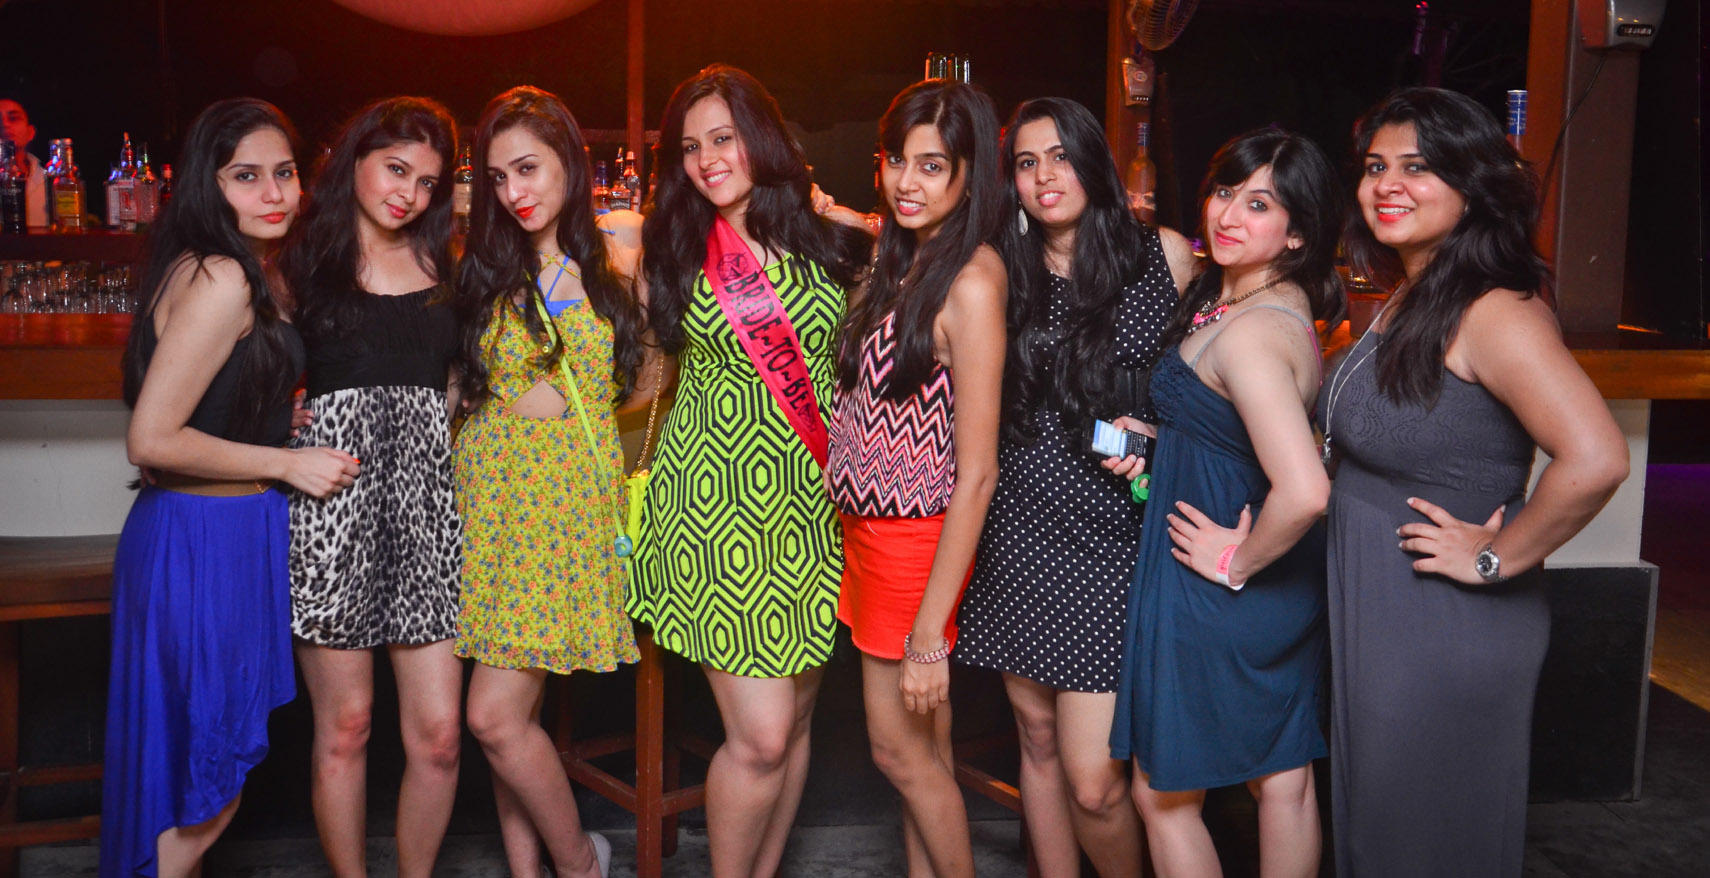 Goa nightclubs vagabond images for Bachelorette party places to go